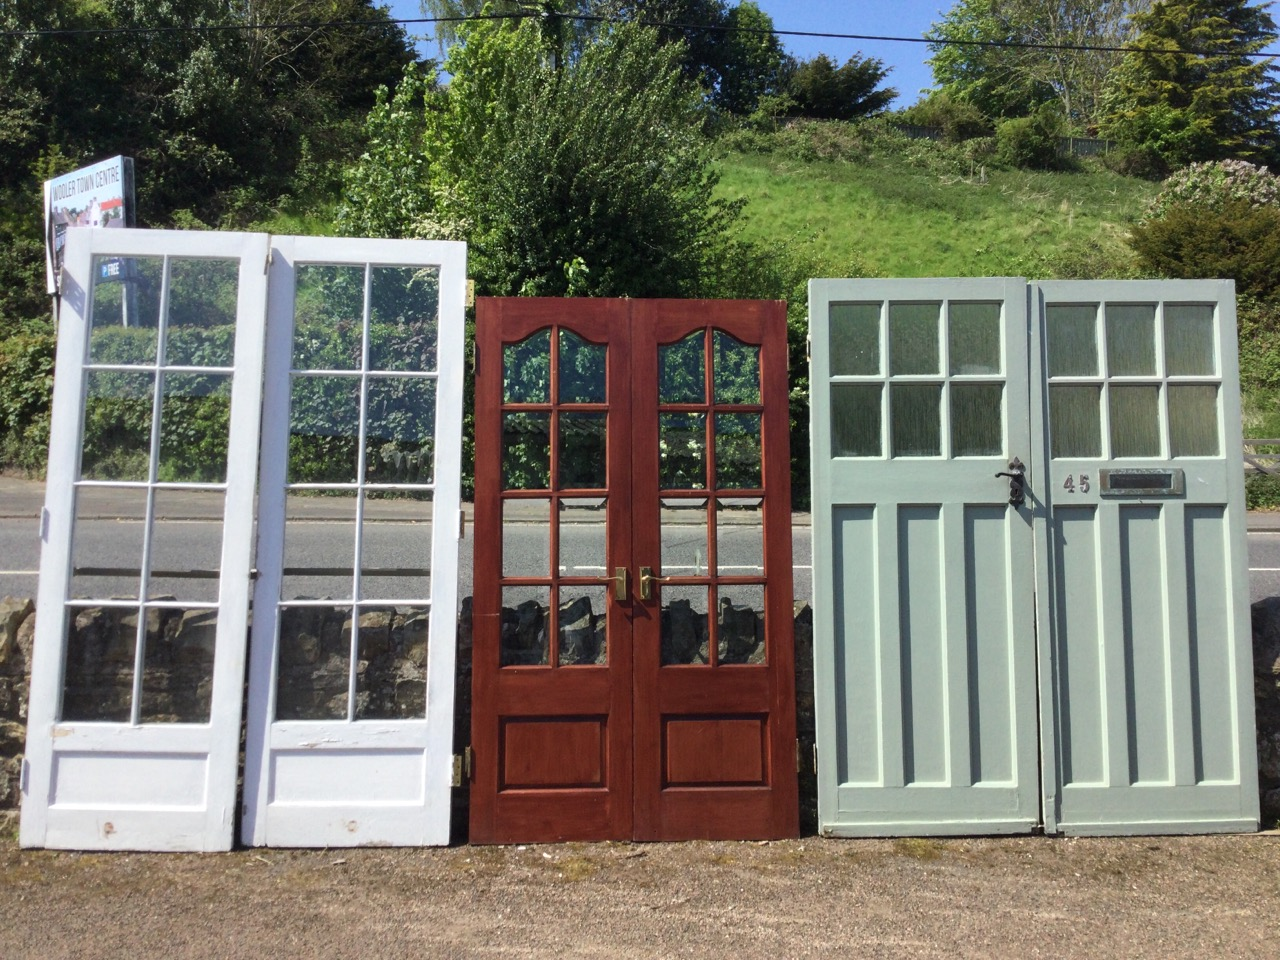 A pair of glazed hardwood patio doors with bevelled glass panes, having arched tops and fielded